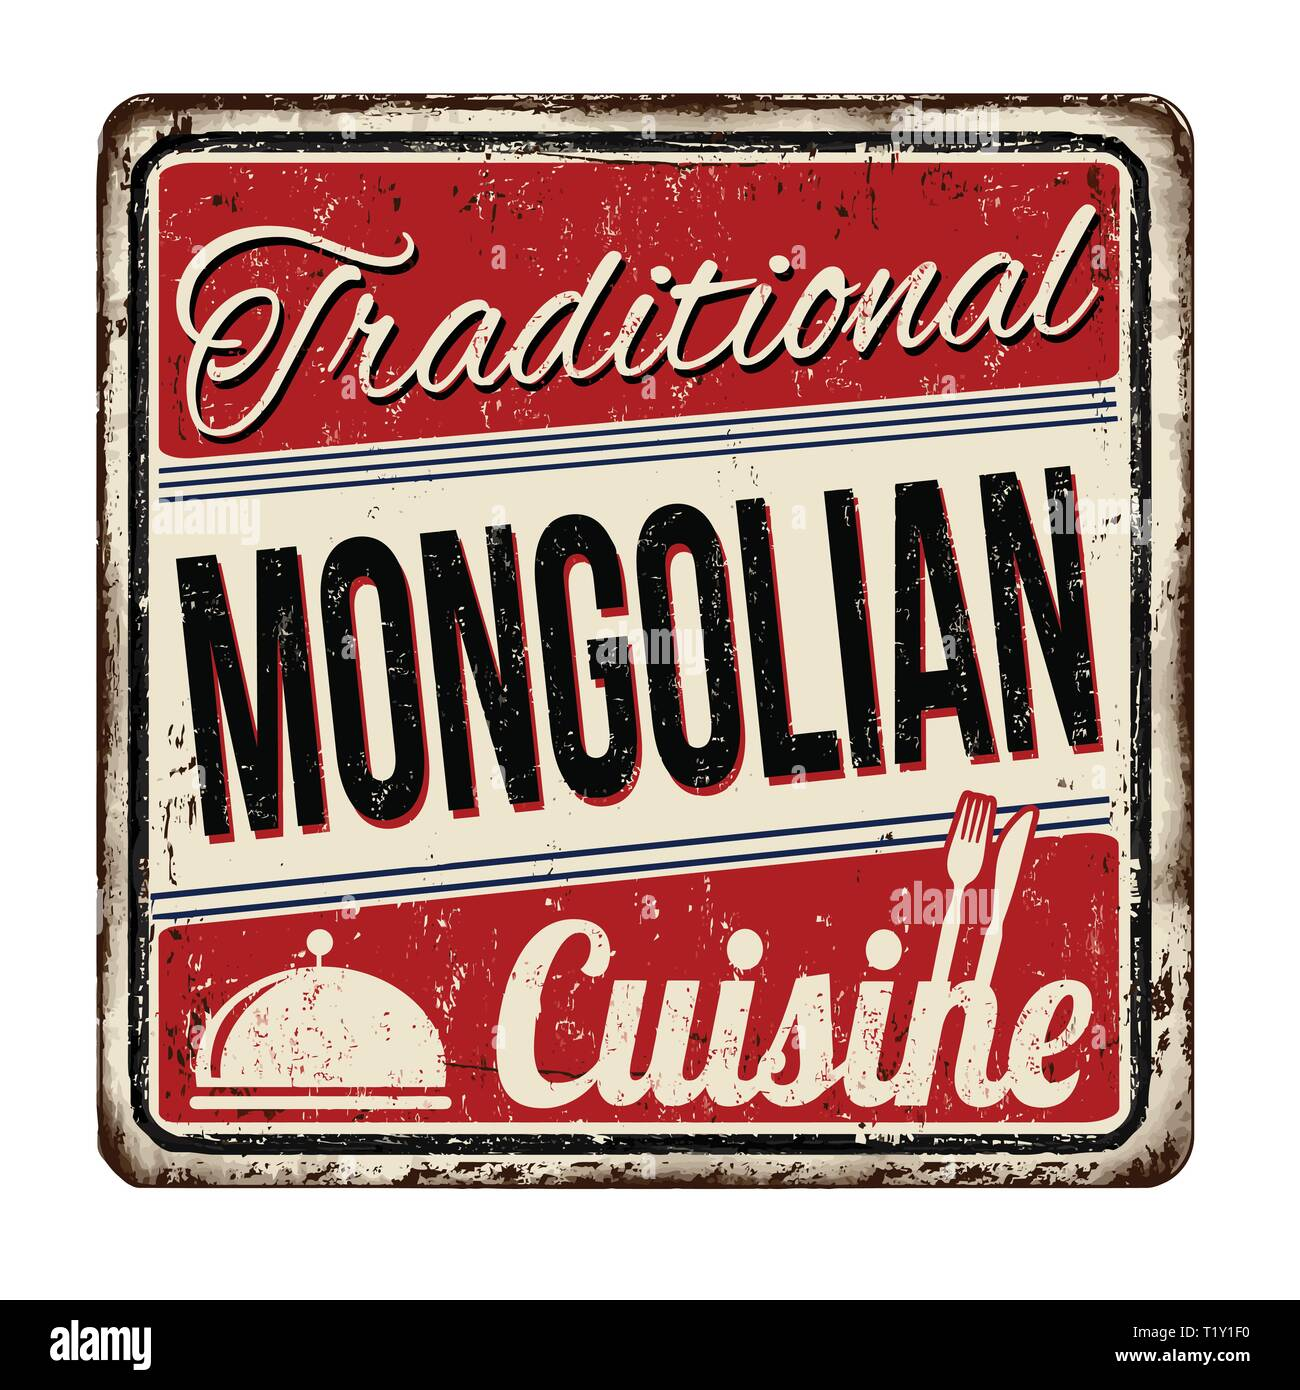 Traditional mongolian cuisine vintage rusty metal sign on a white background, vector illustration - Stock Vector